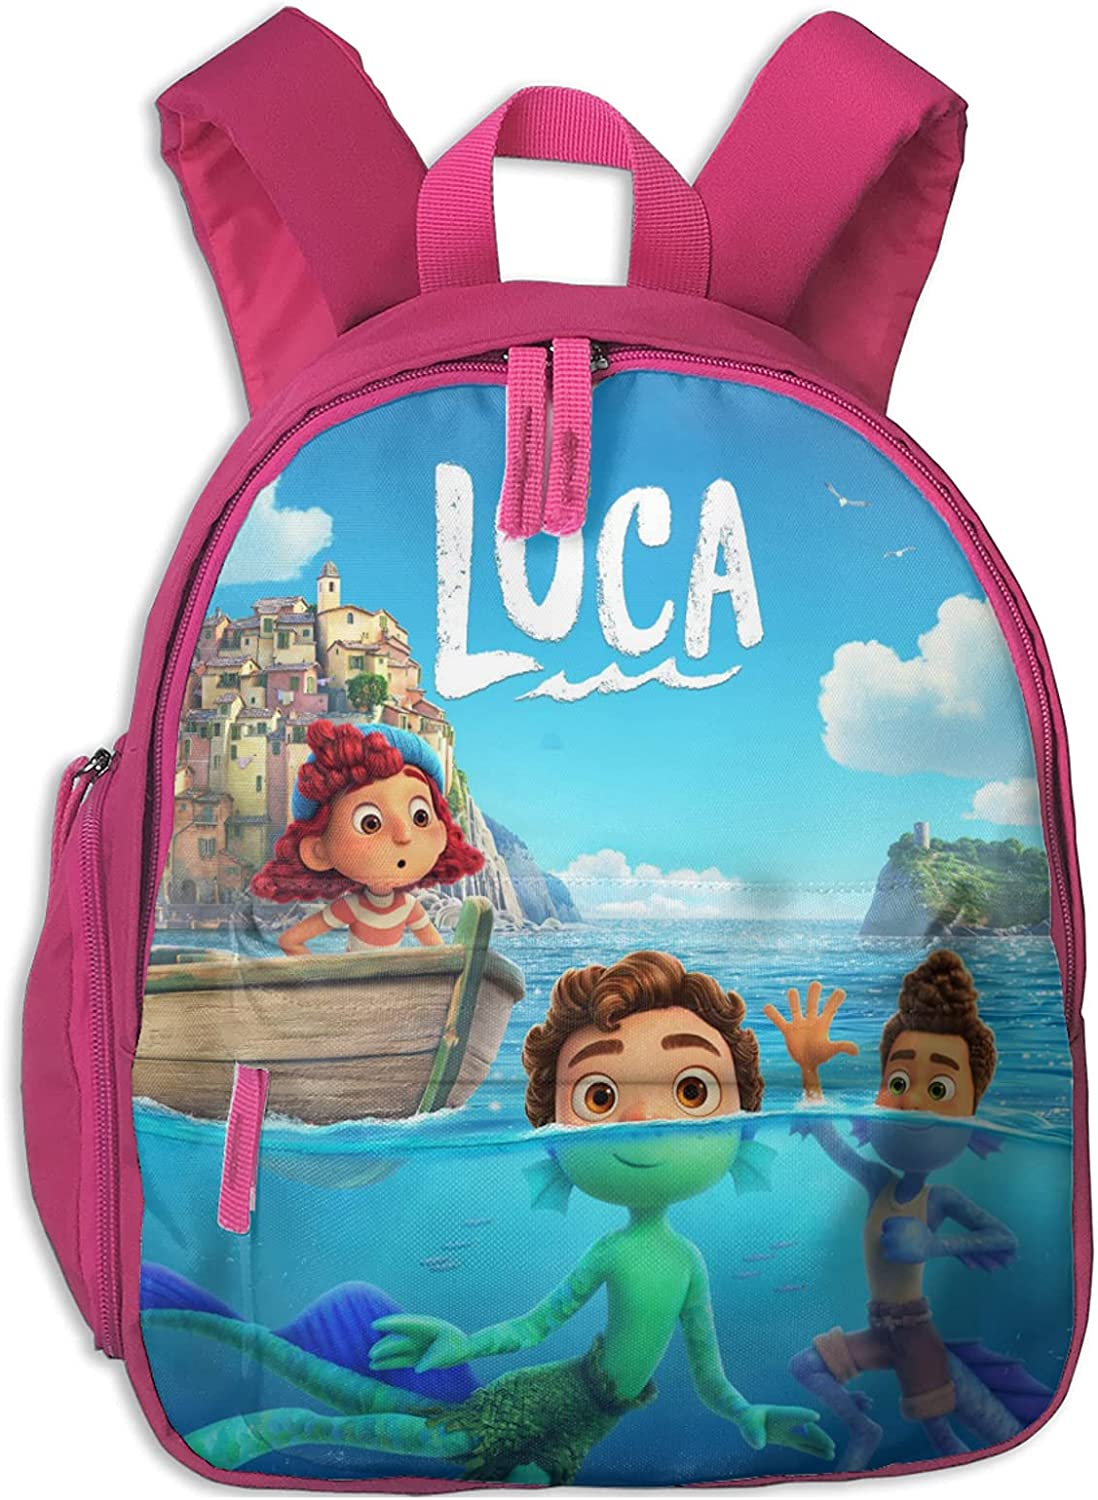 Pixar's Luca Backpack 3D Fashion Outlet sale feature Lightweight Bac Super sale period limited Casual